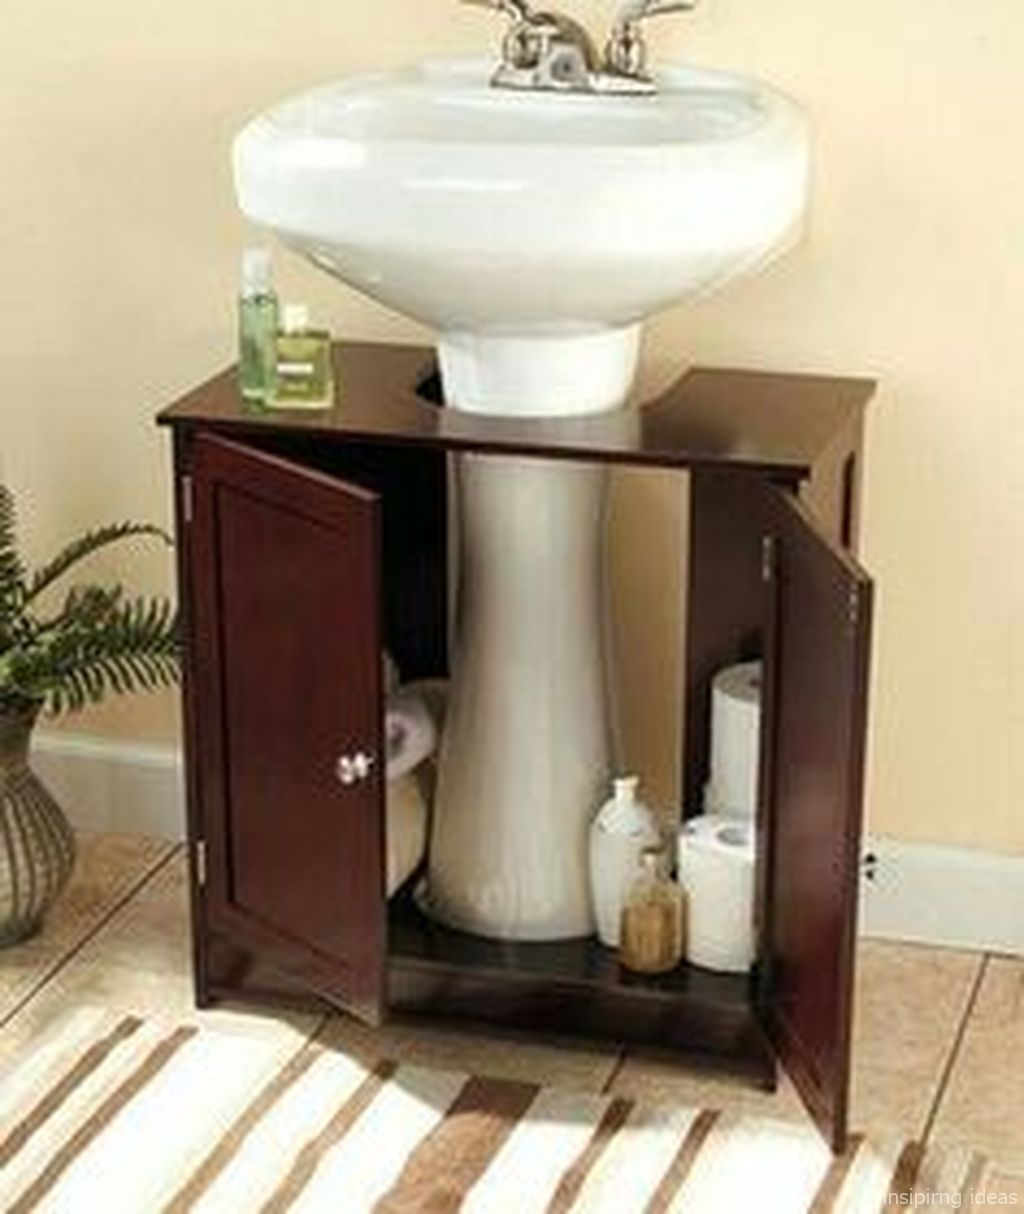 Awesome 135 Rustic Storage Cabinet Ideas On A Budget Https Roomaholic Com 2576 135 Rustic Storage C Pedestal Sink Storage Small Bathroom Storage Sink Storage